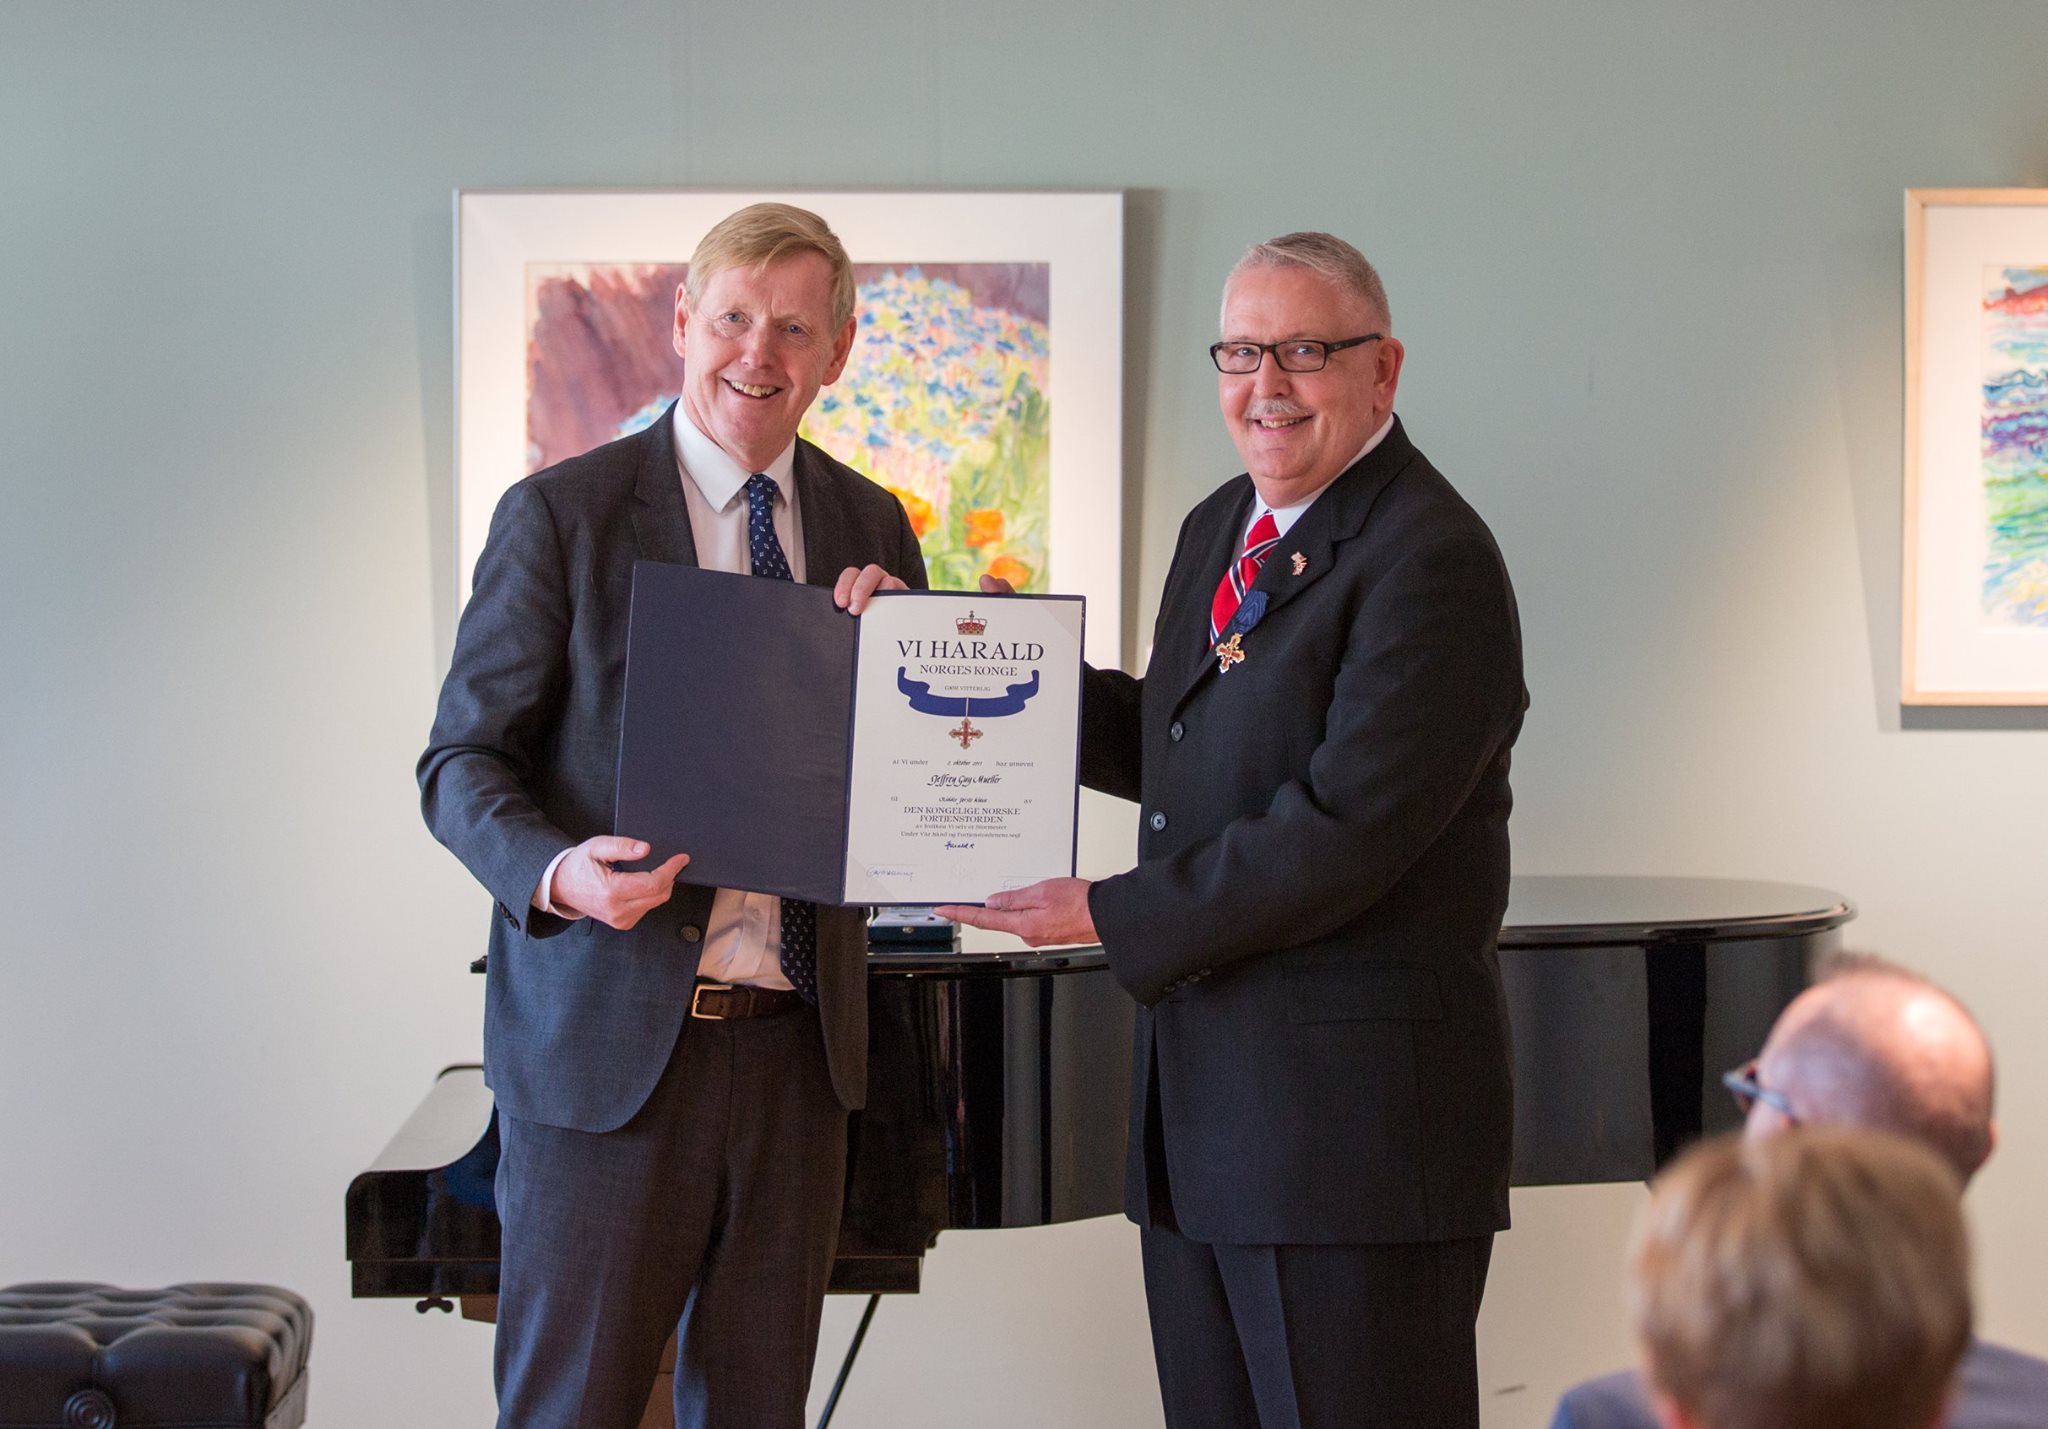 Jeff Mueller receives the certificate of his rank from Norwegian Ambassador to the United States, Kåre Aas.